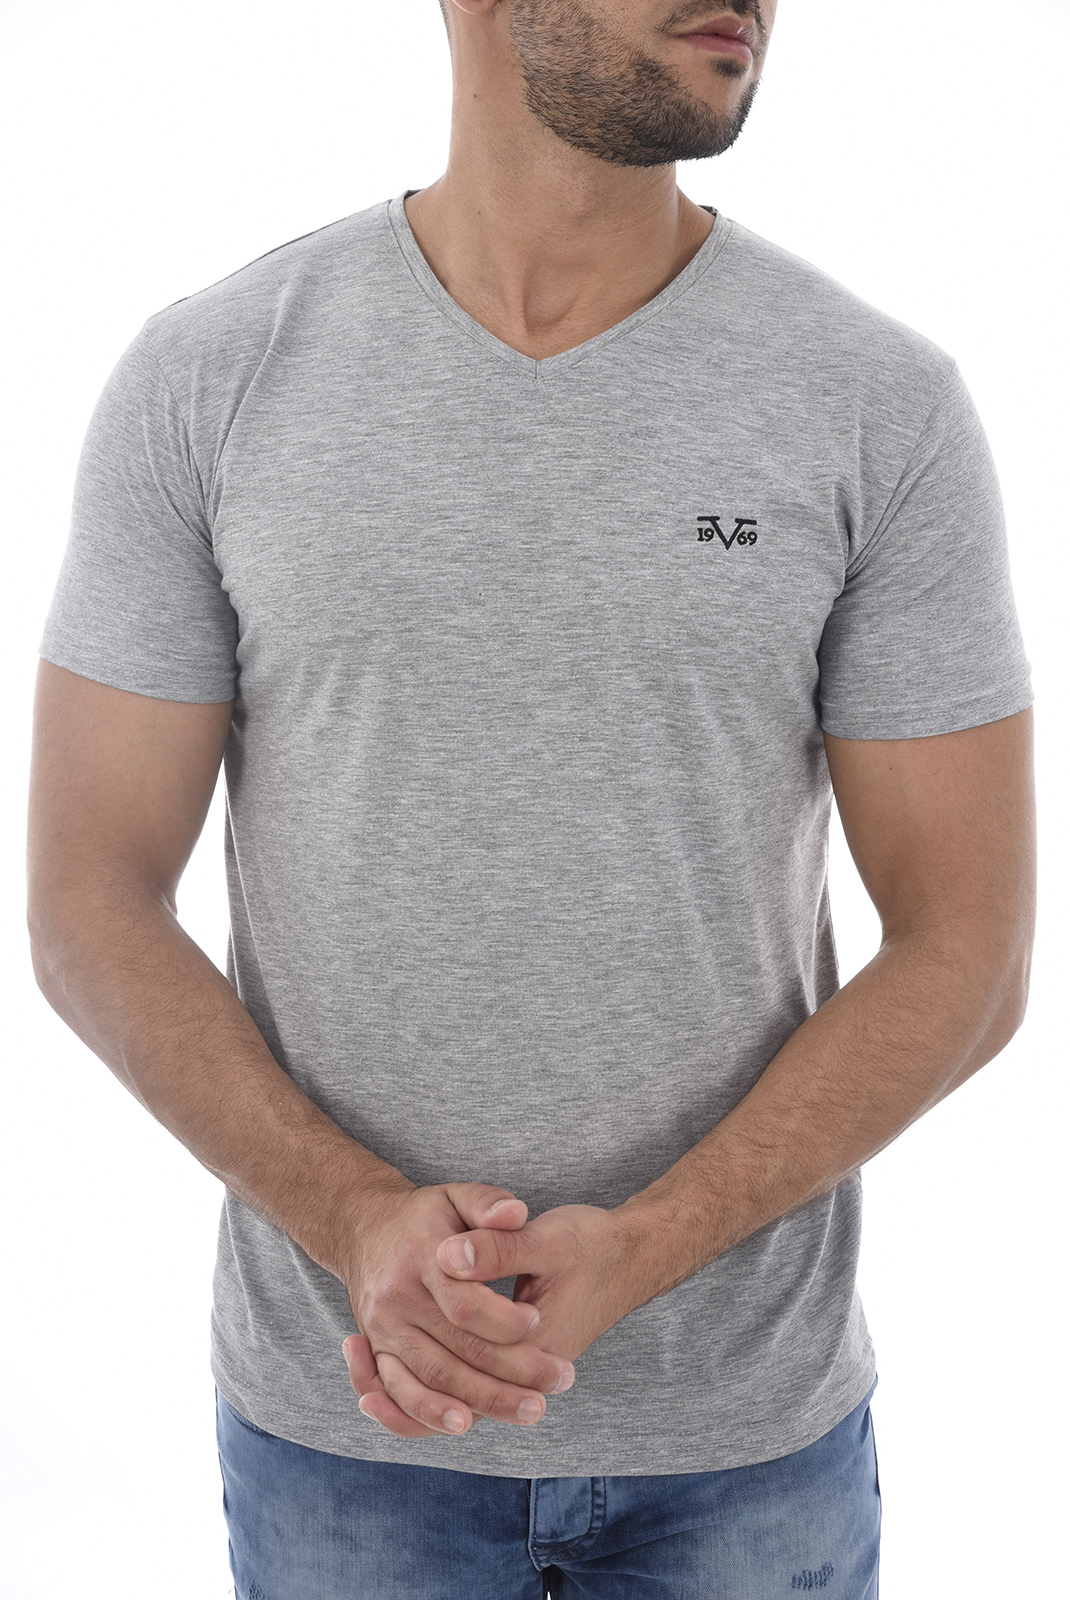 Tee-shirts  19V69 by Versace 1969 MODENE 2 GRIS CLAIR